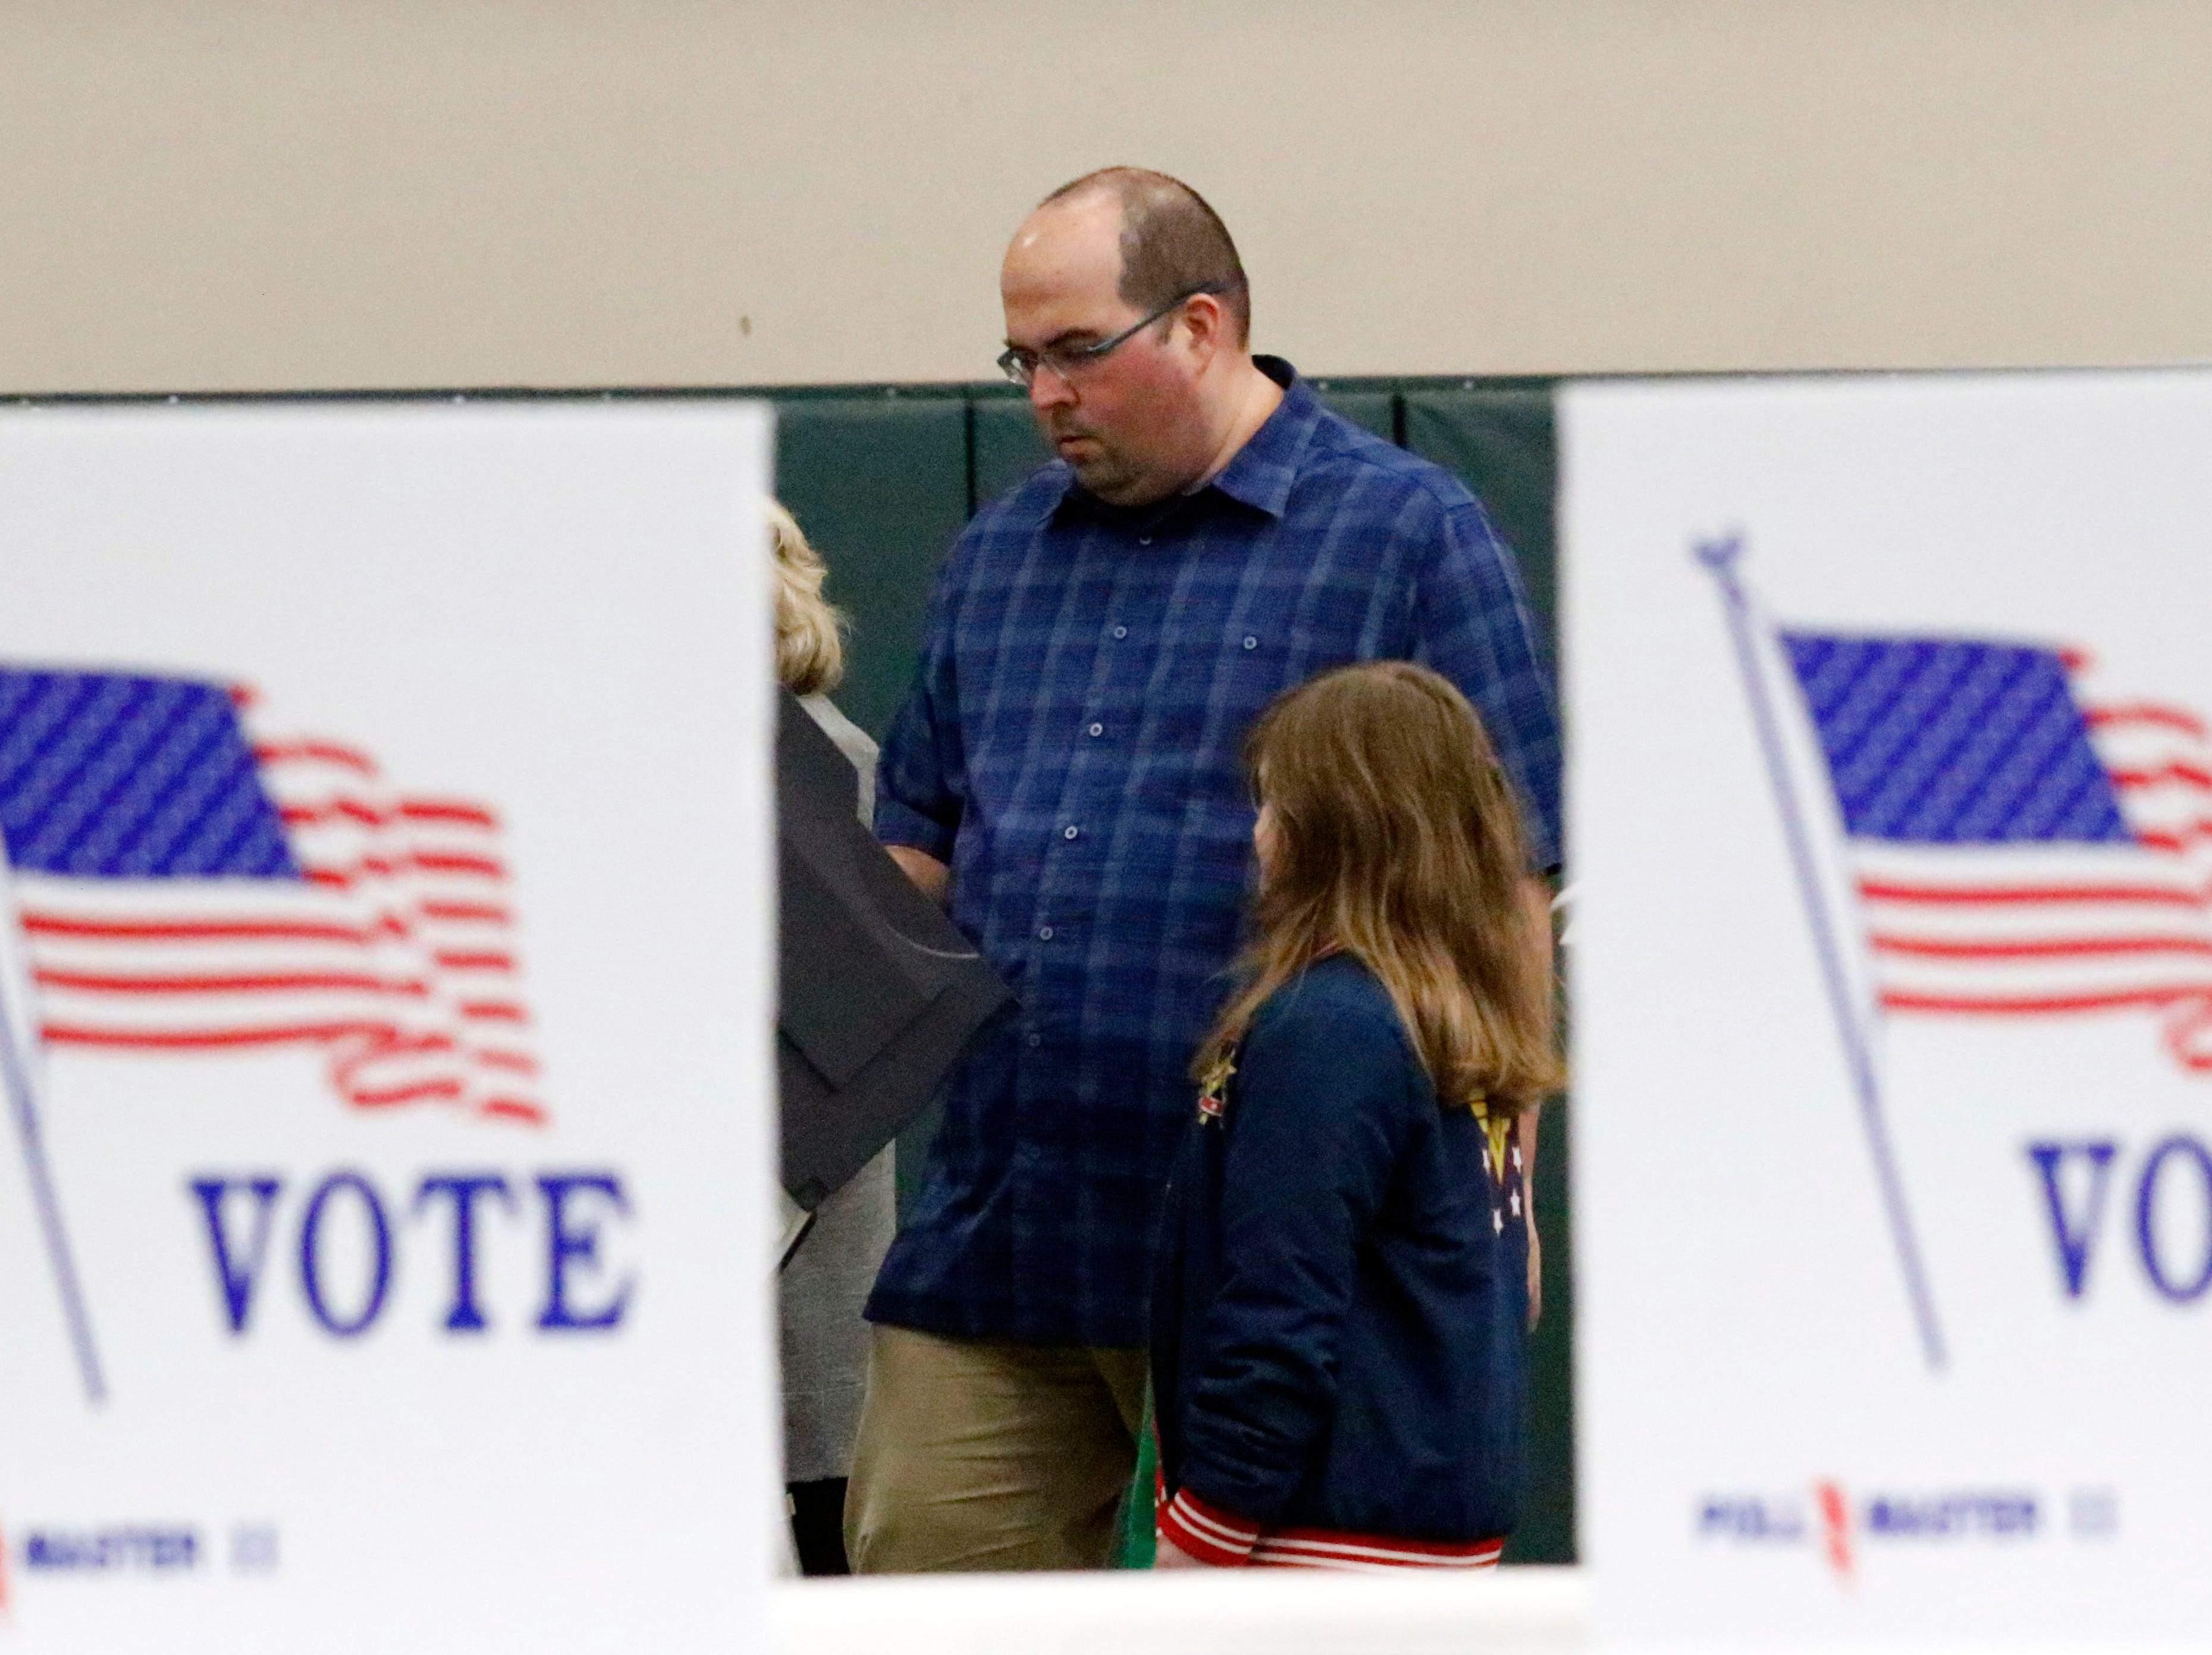 Jared Bailey, from Lancaster, votes with his daughter Chloe Bailey Tuesday, Nov. 6, 2018, at the Crossroads Ministry Center in Lancaster. Voting for multiple Lancaster precincts takes place at the center.